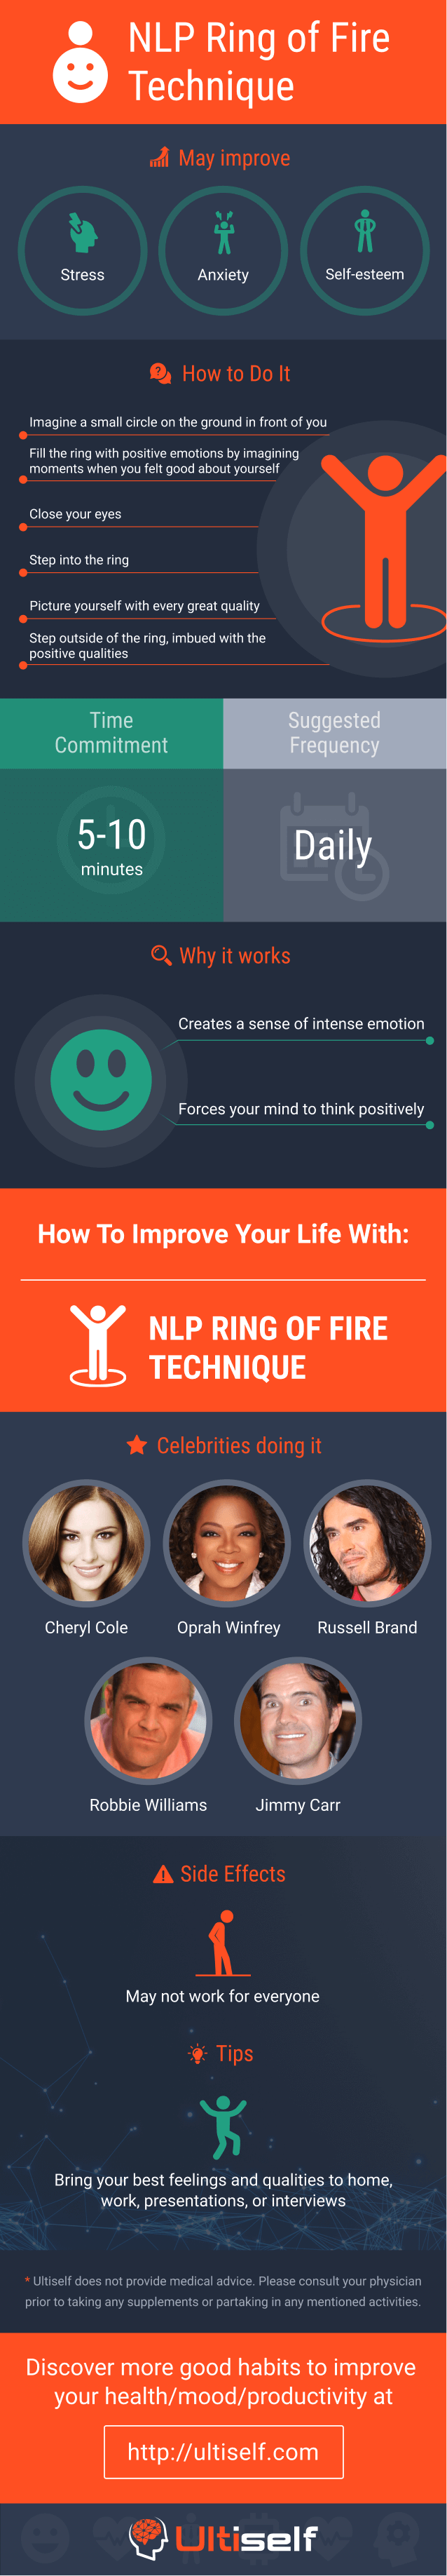 NLP Ring of Fire Technique infographic